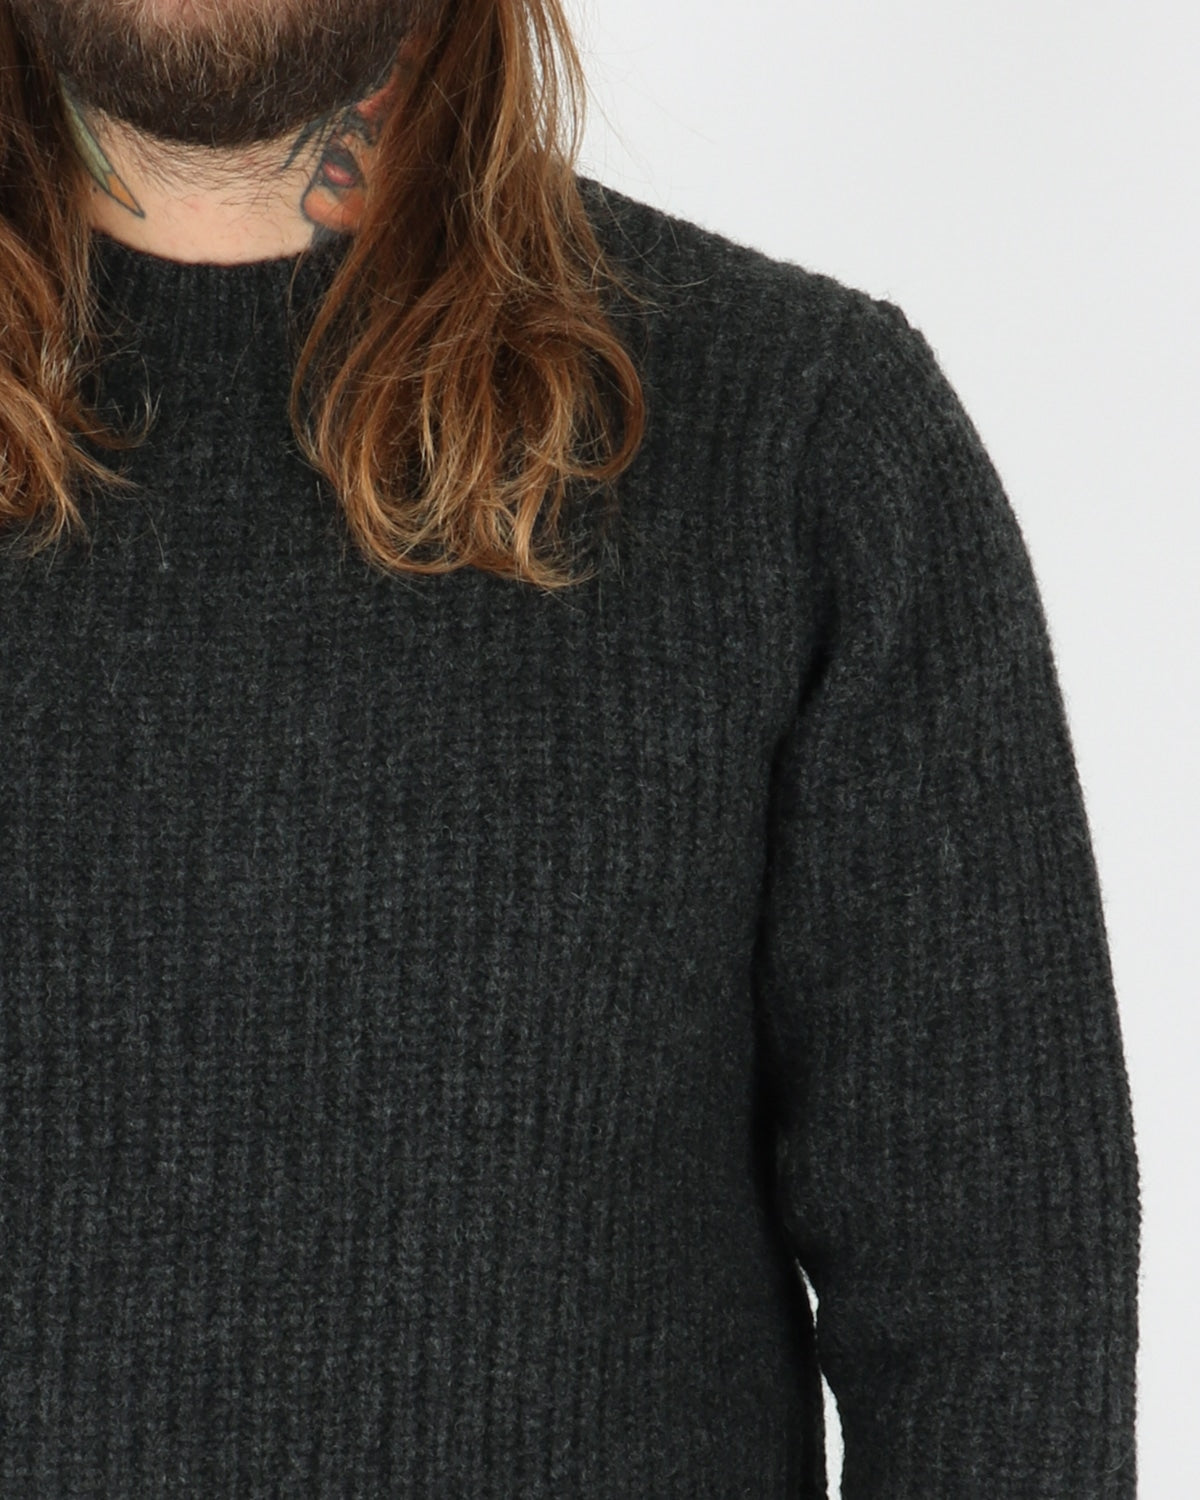 legends_lambswool knit_charcoal_2_3